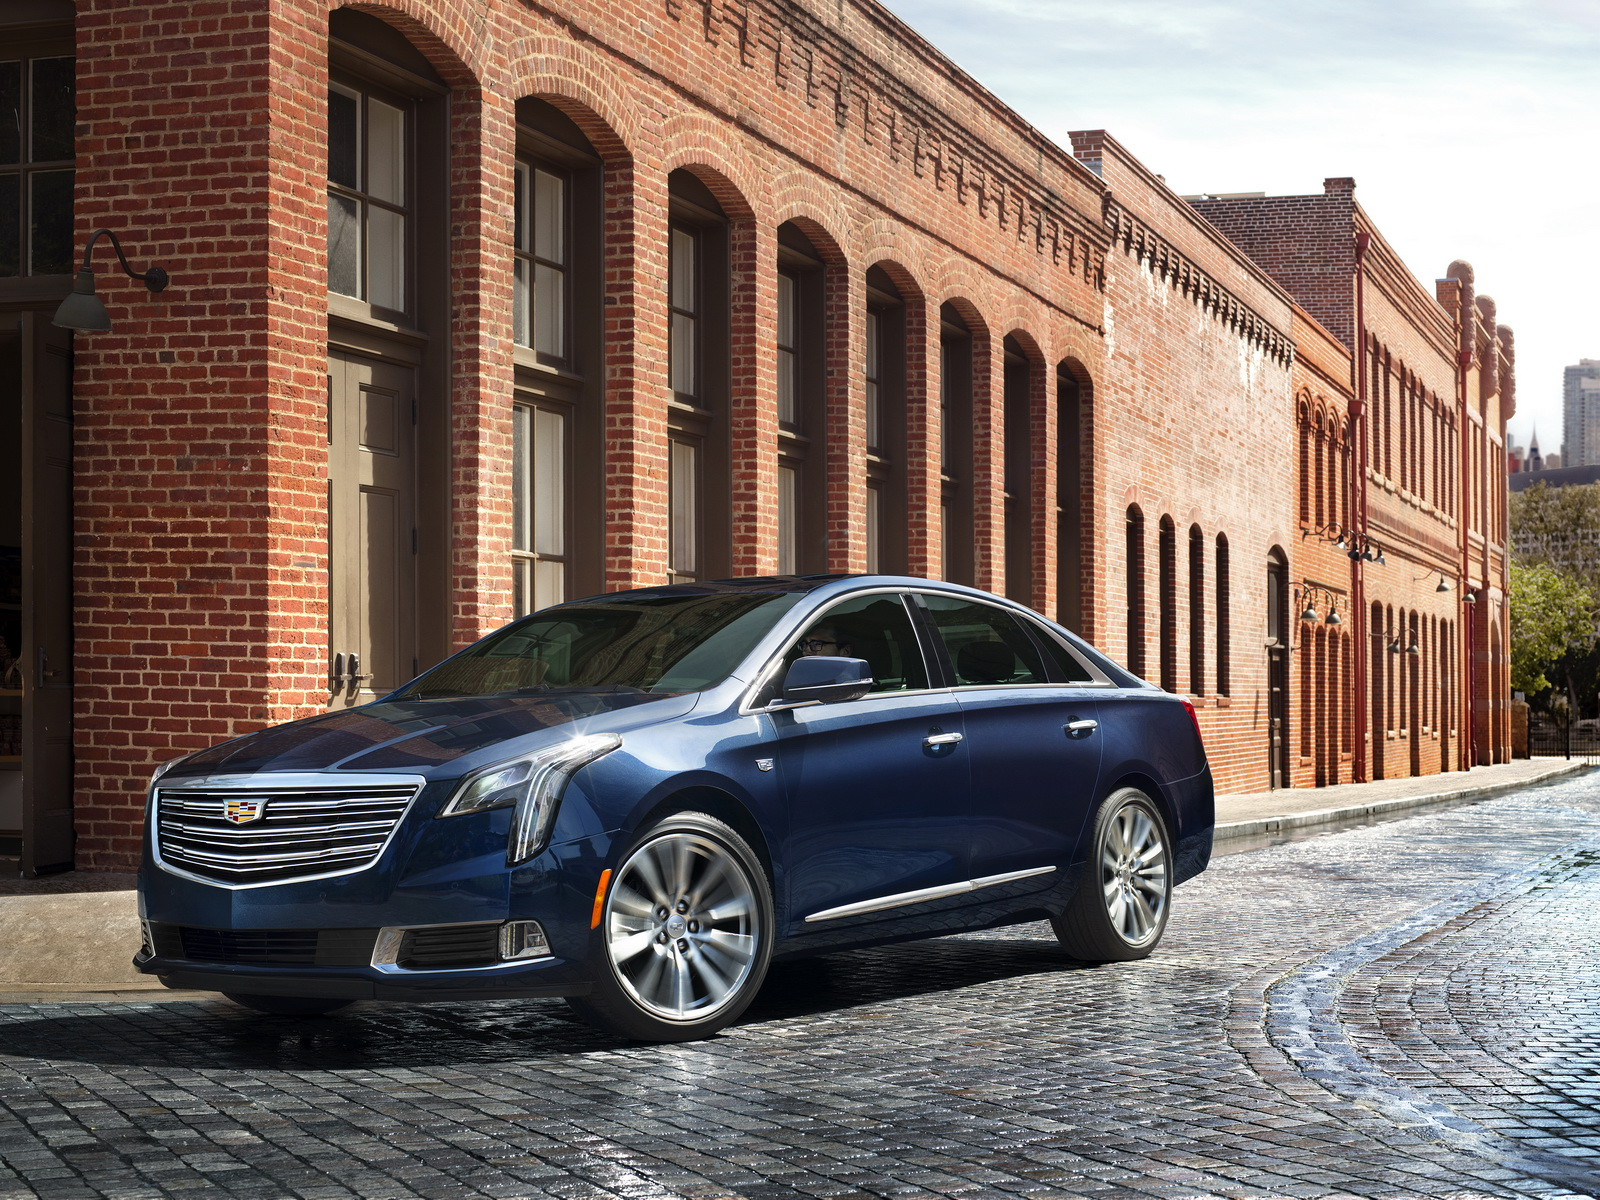 Vwvortex com facelifted 2018 cadillac xts revealed fresh styling enhanced technology and an improved chassis